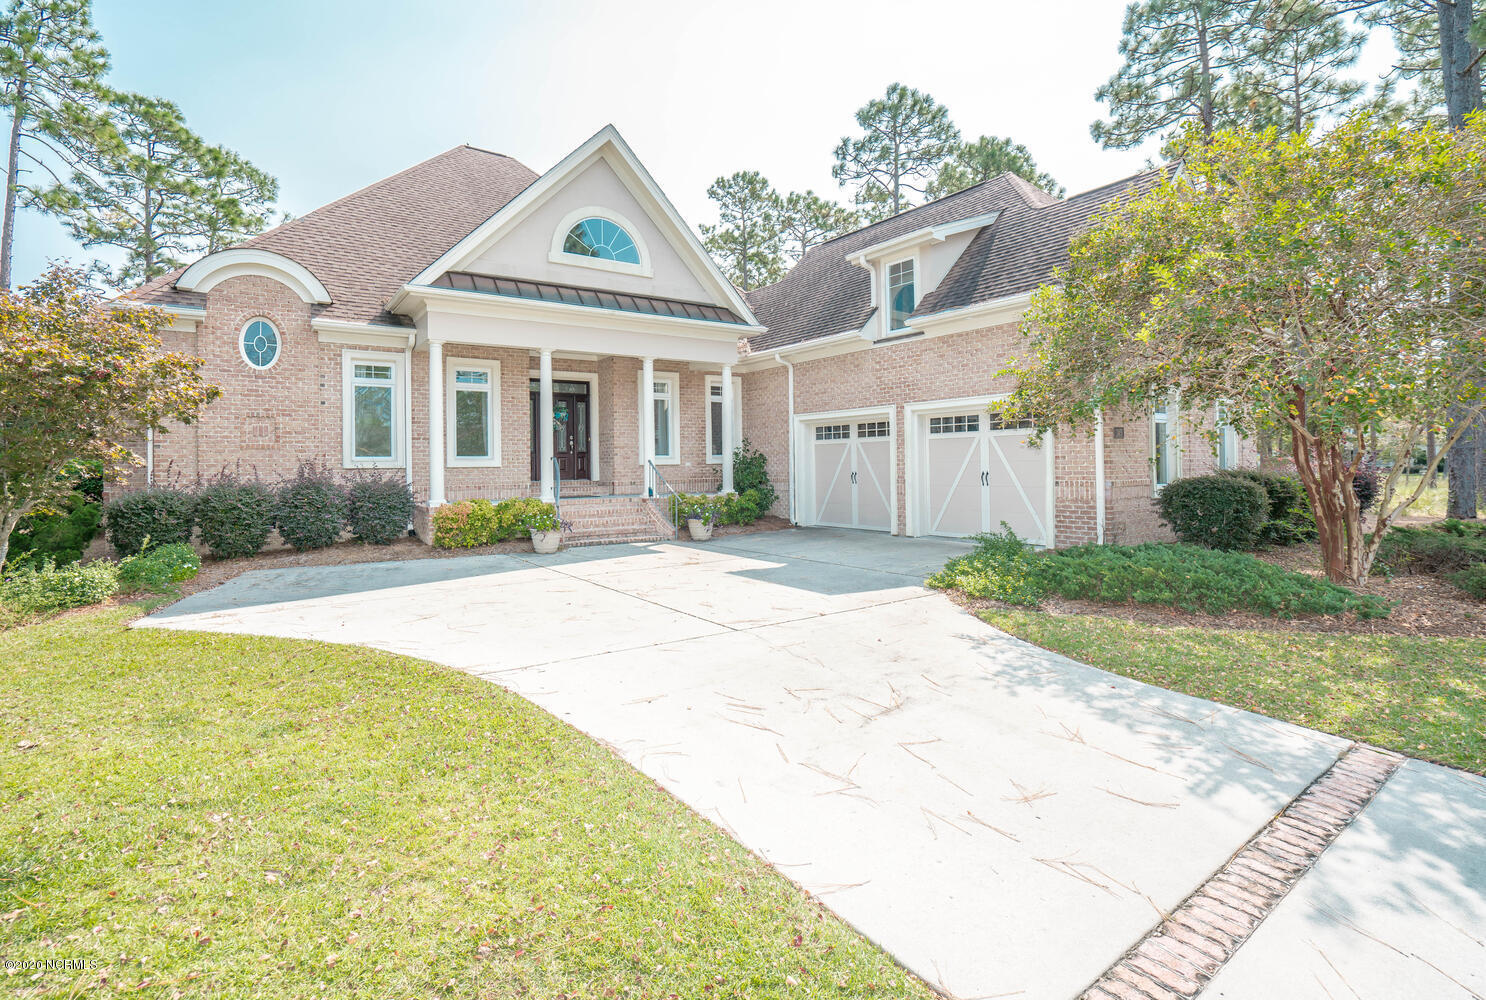 345 Laurel Valley Drive Shallotte, NC 28470